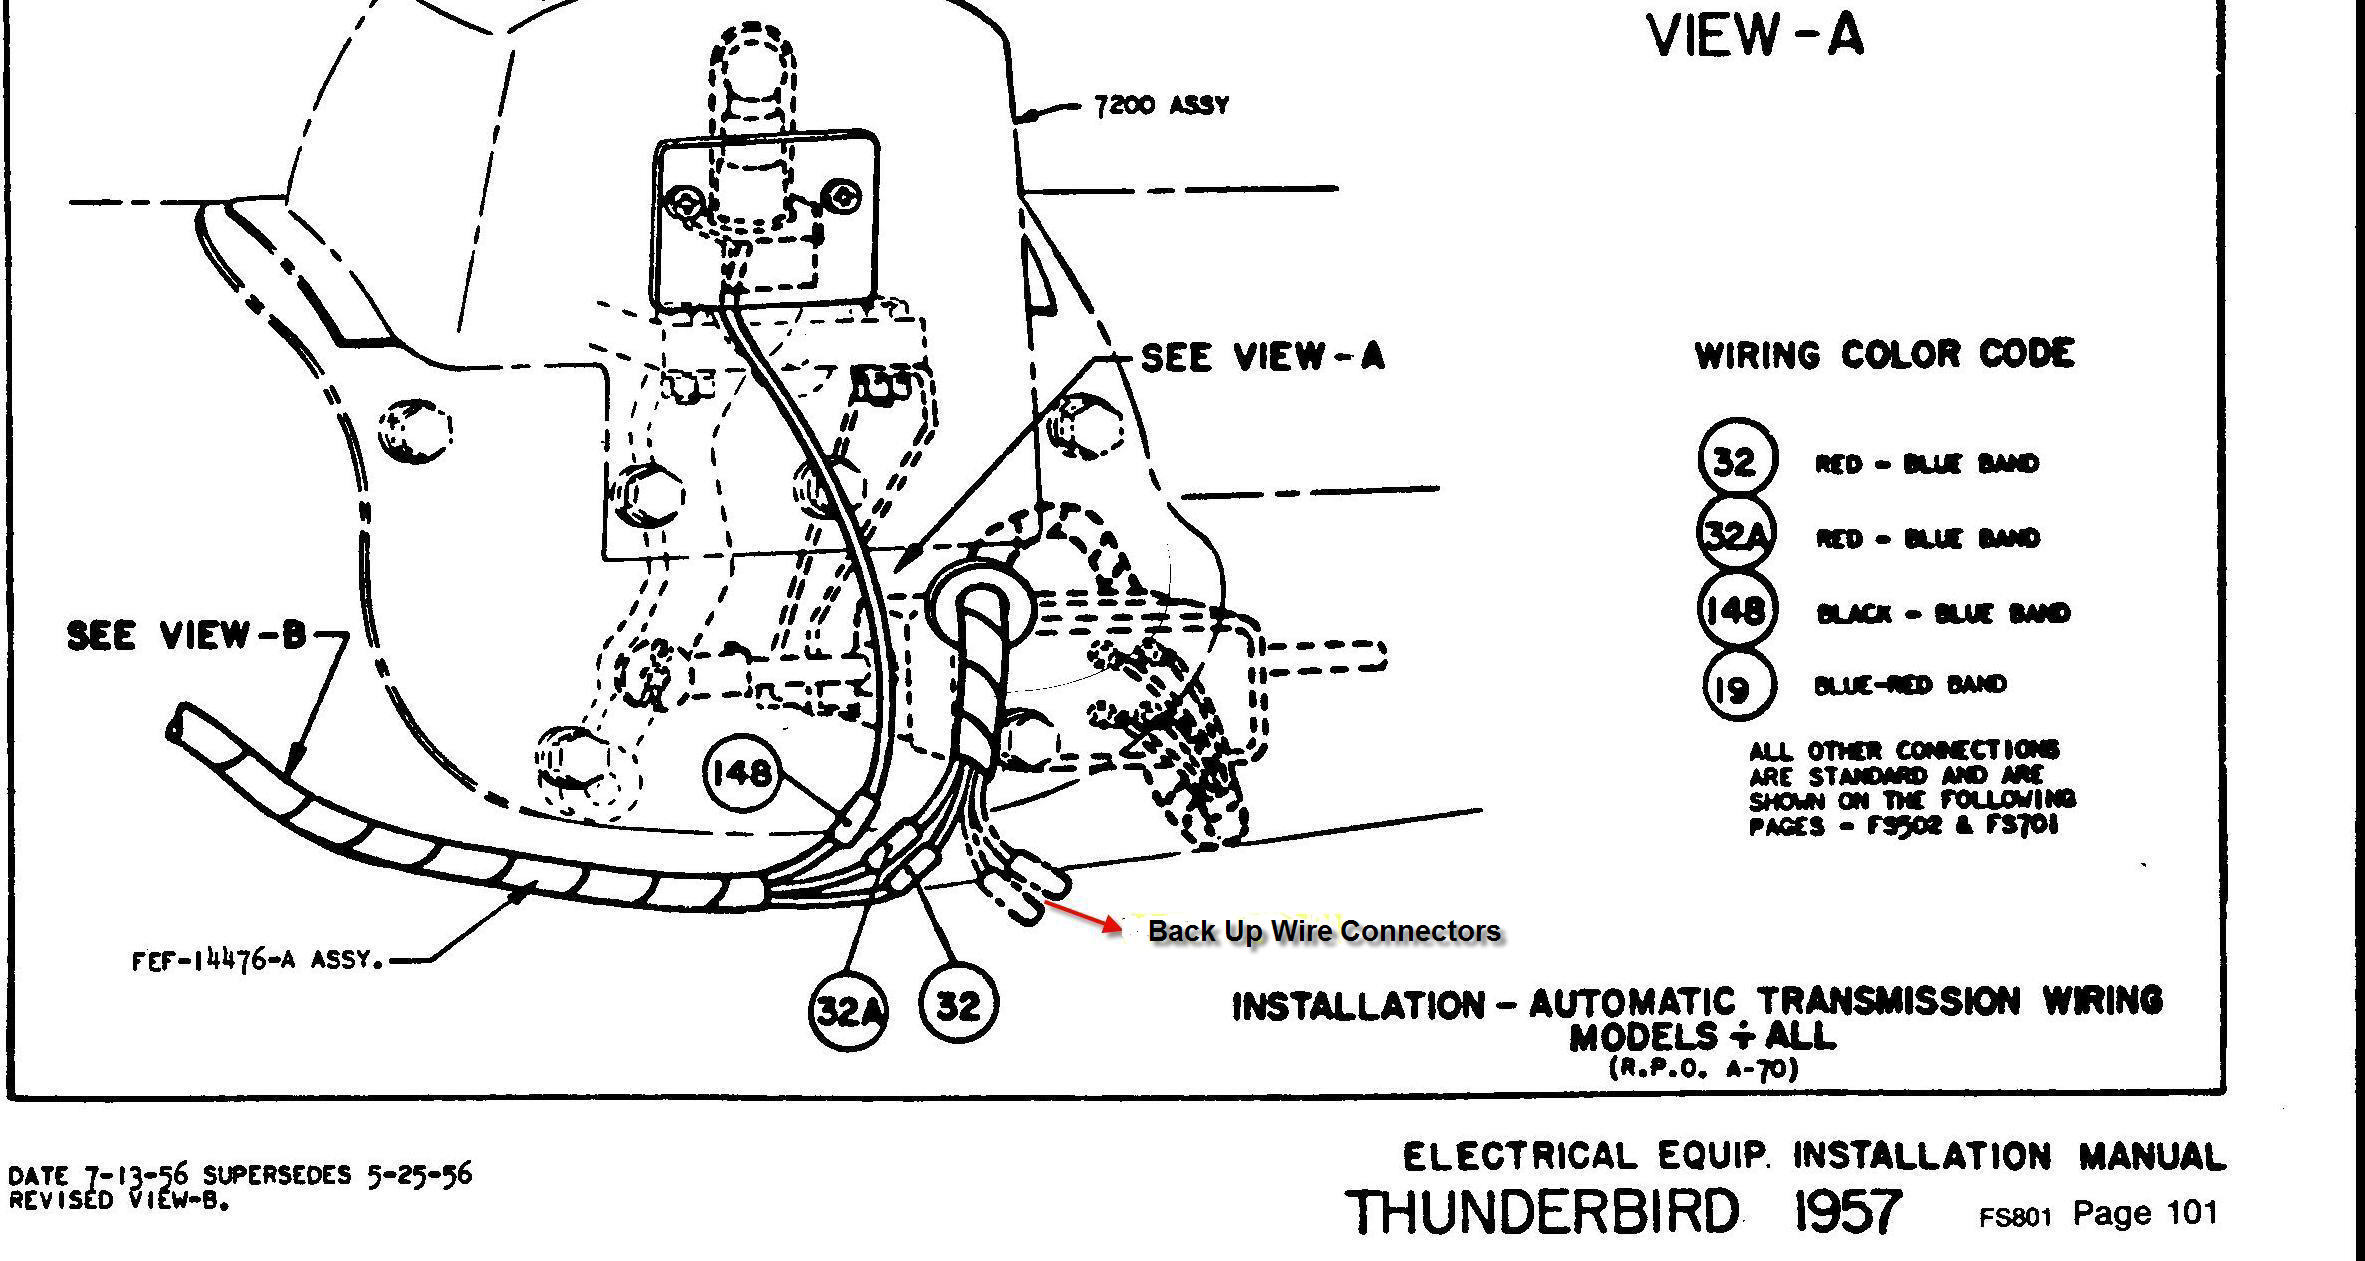 Ford Customline Wiring Diagram Auto. Ford. Auto Wiring Diagram